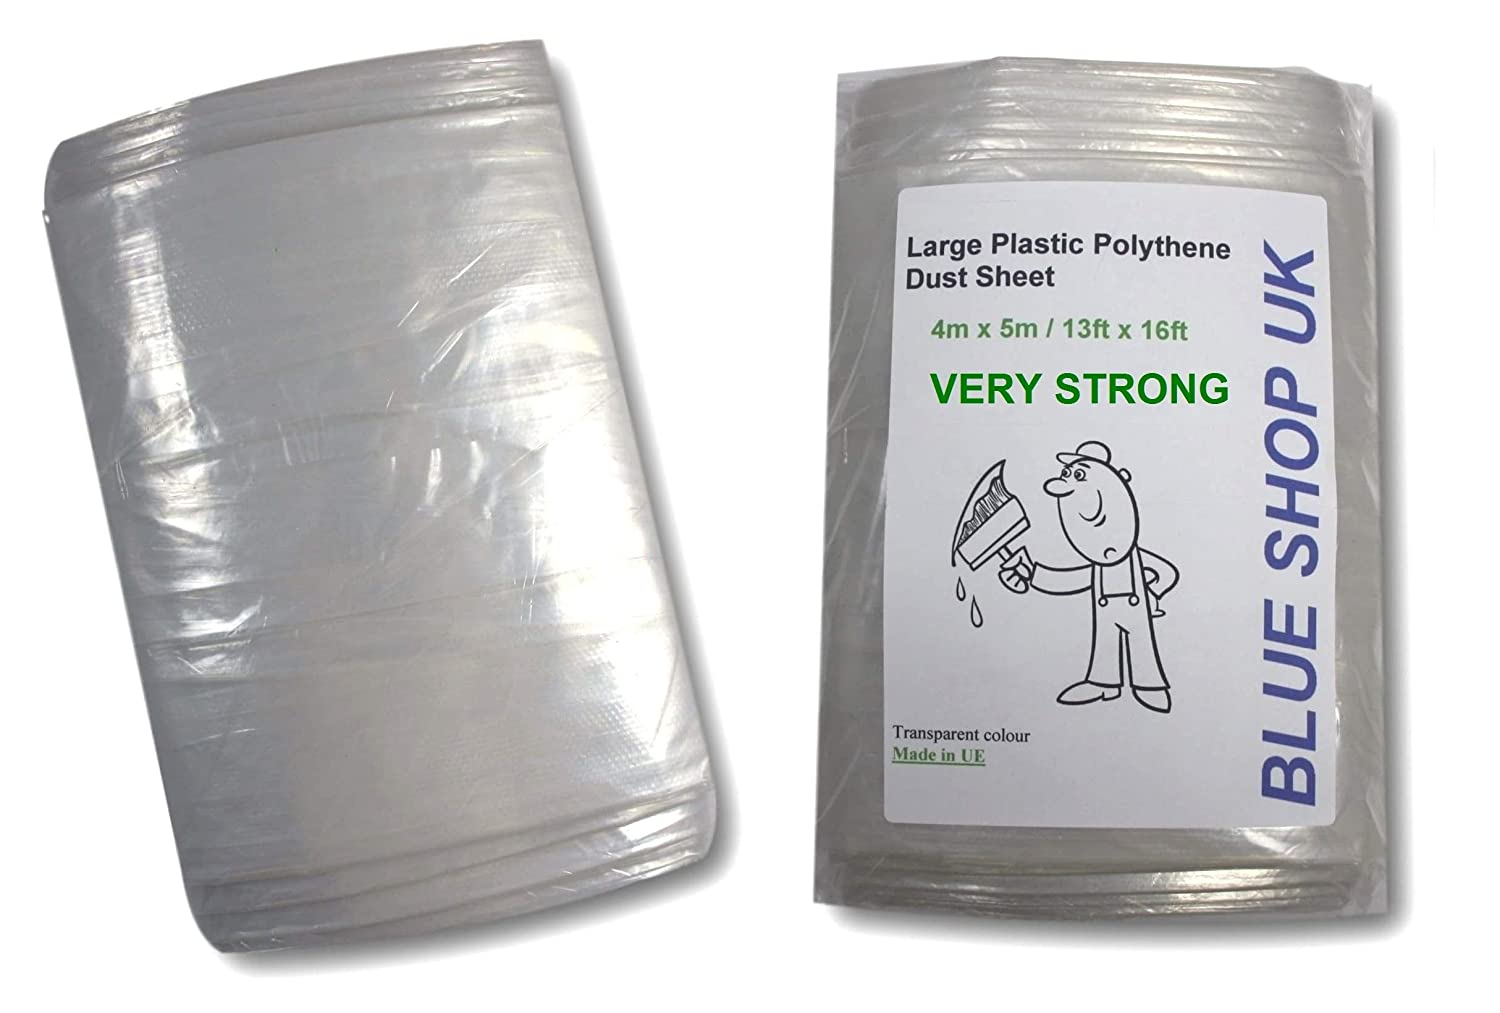 2 x 600g Weight 2 x 0.6kg Very Strong 4m x 5m Heavy Duty Large Plastic Polythene Dust Sheet 13ft x 16ft Painting Masking (Floor Windows) *ODORLESS (2 x 600g Very Strong Large Polythene Dust Sheet) Blue Shop UK